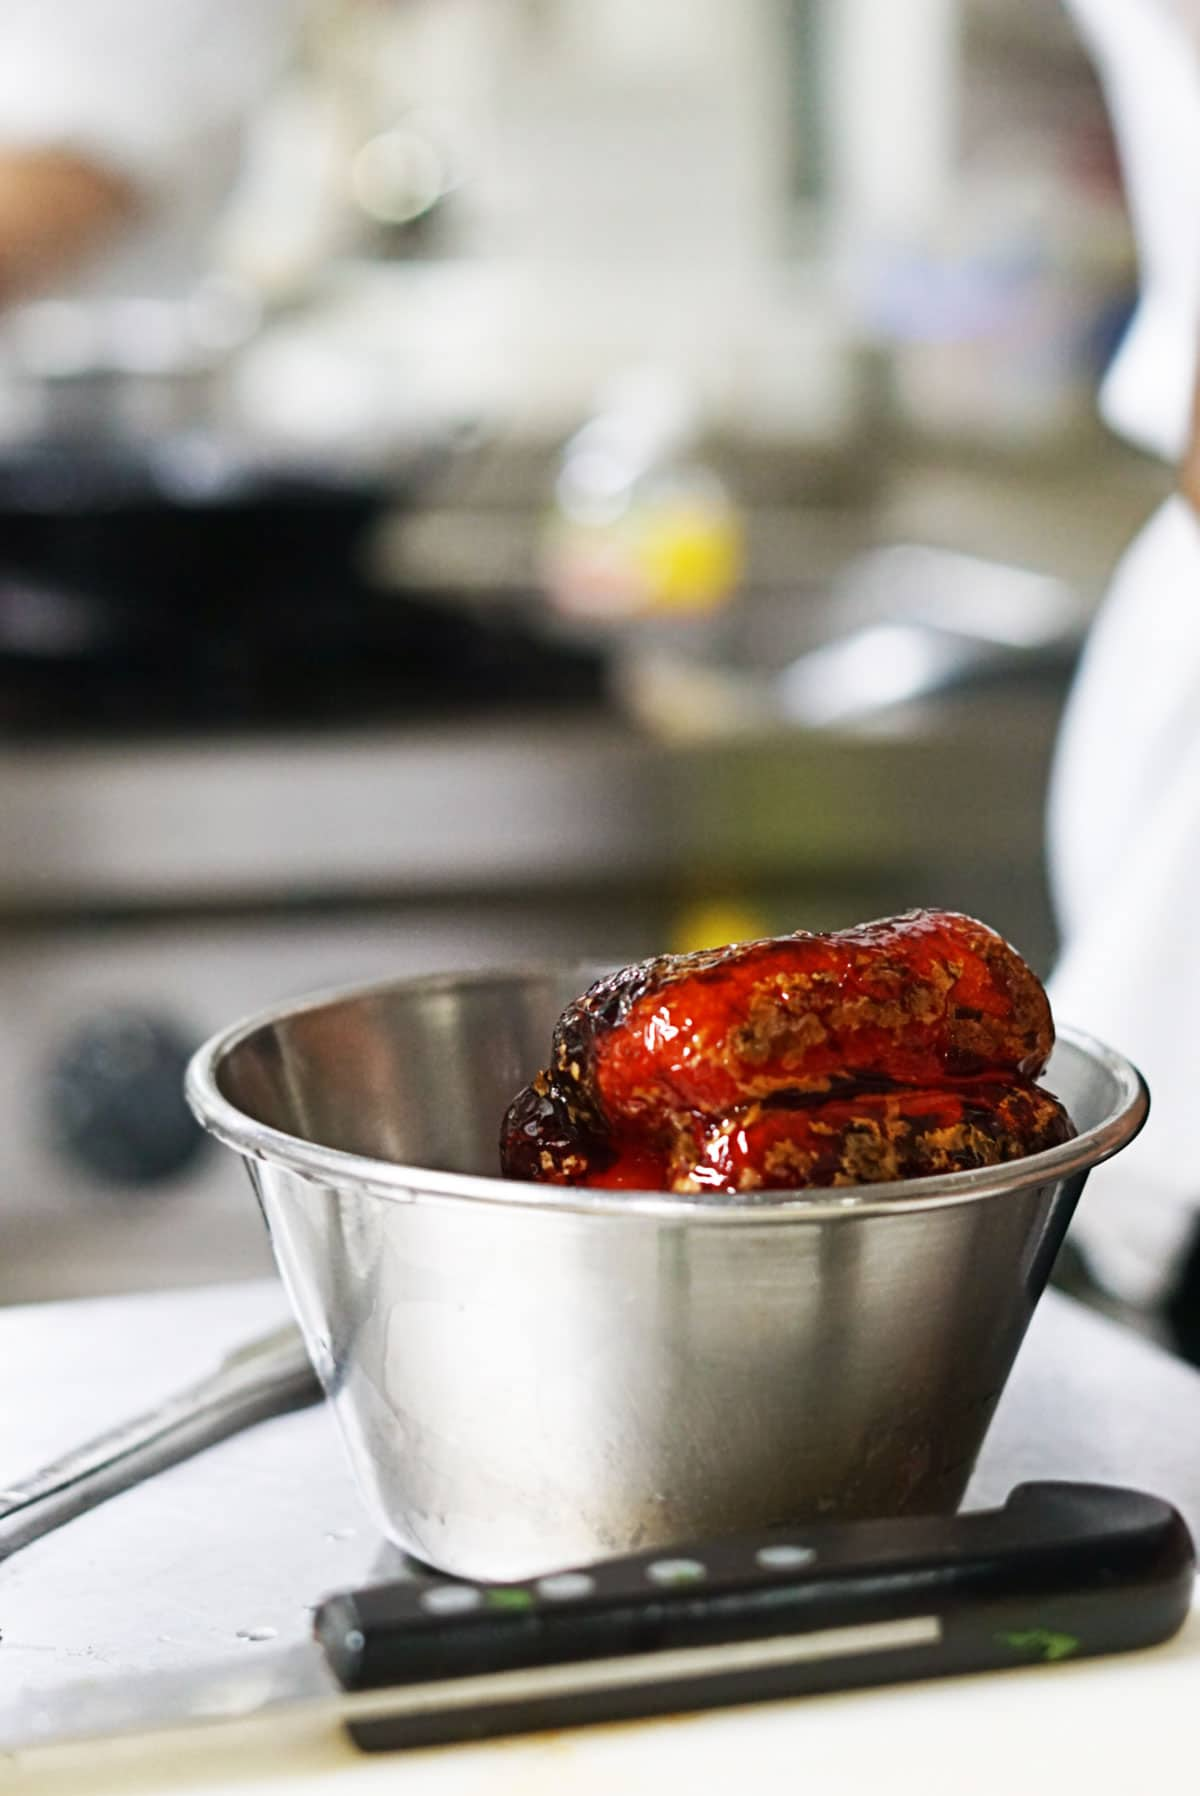 Roasted Red Pepper at restaurant cooking class